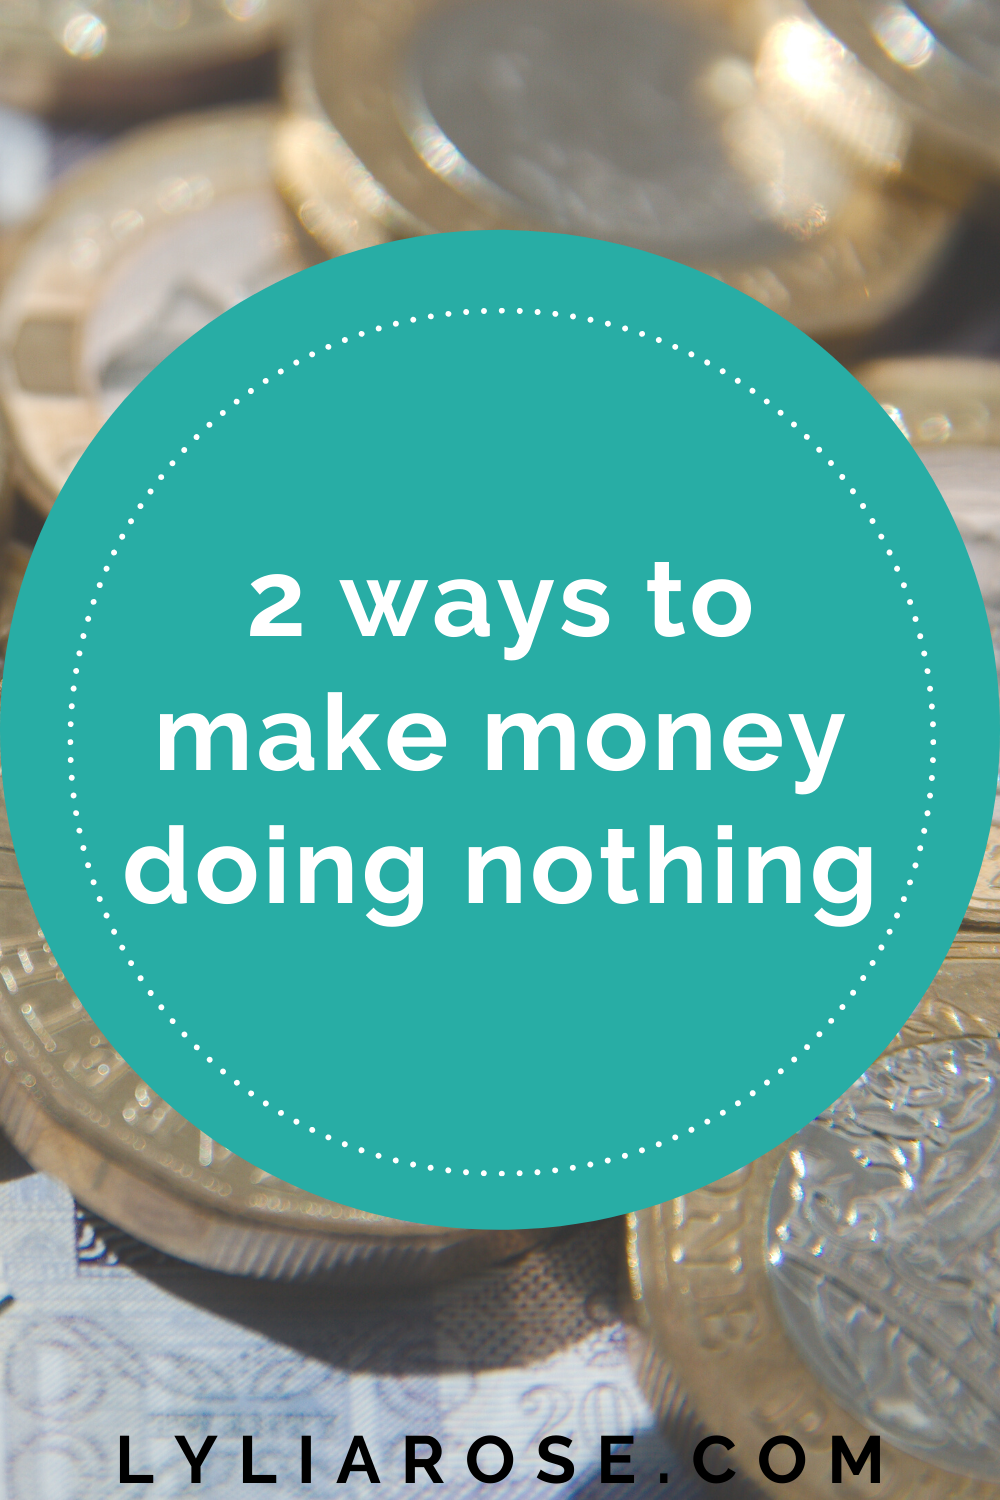 2 ways to make money doing nothing (3)